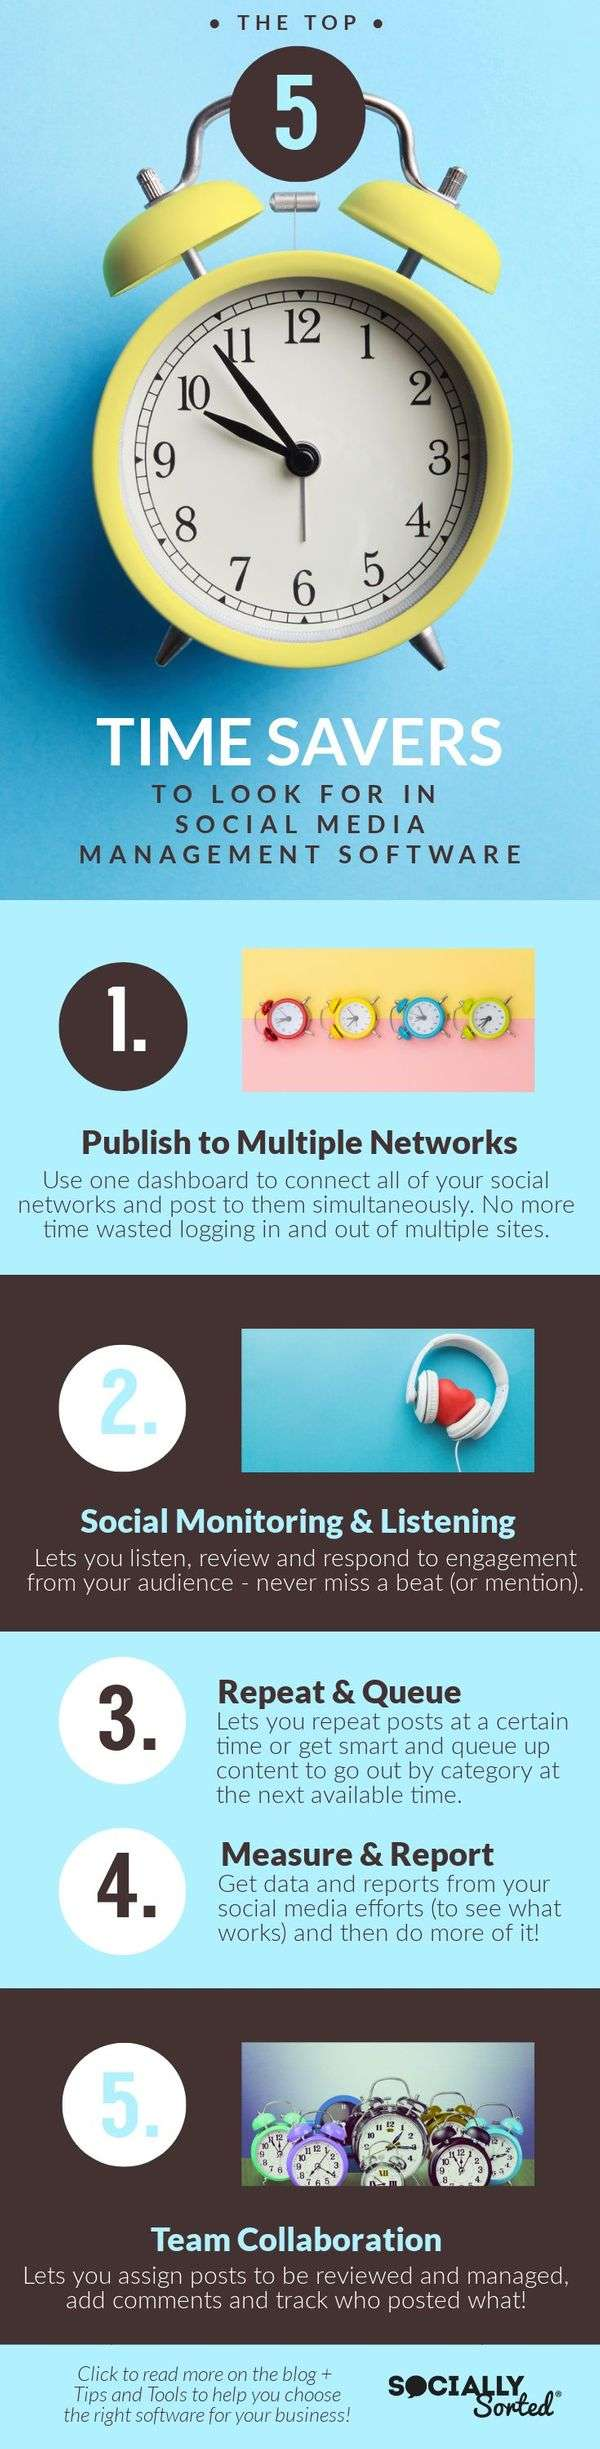 Infographic - 5 Top Time Savers to Look for in Social Media Management Software #SocialMediaManagement #SocialMedia #Infographic